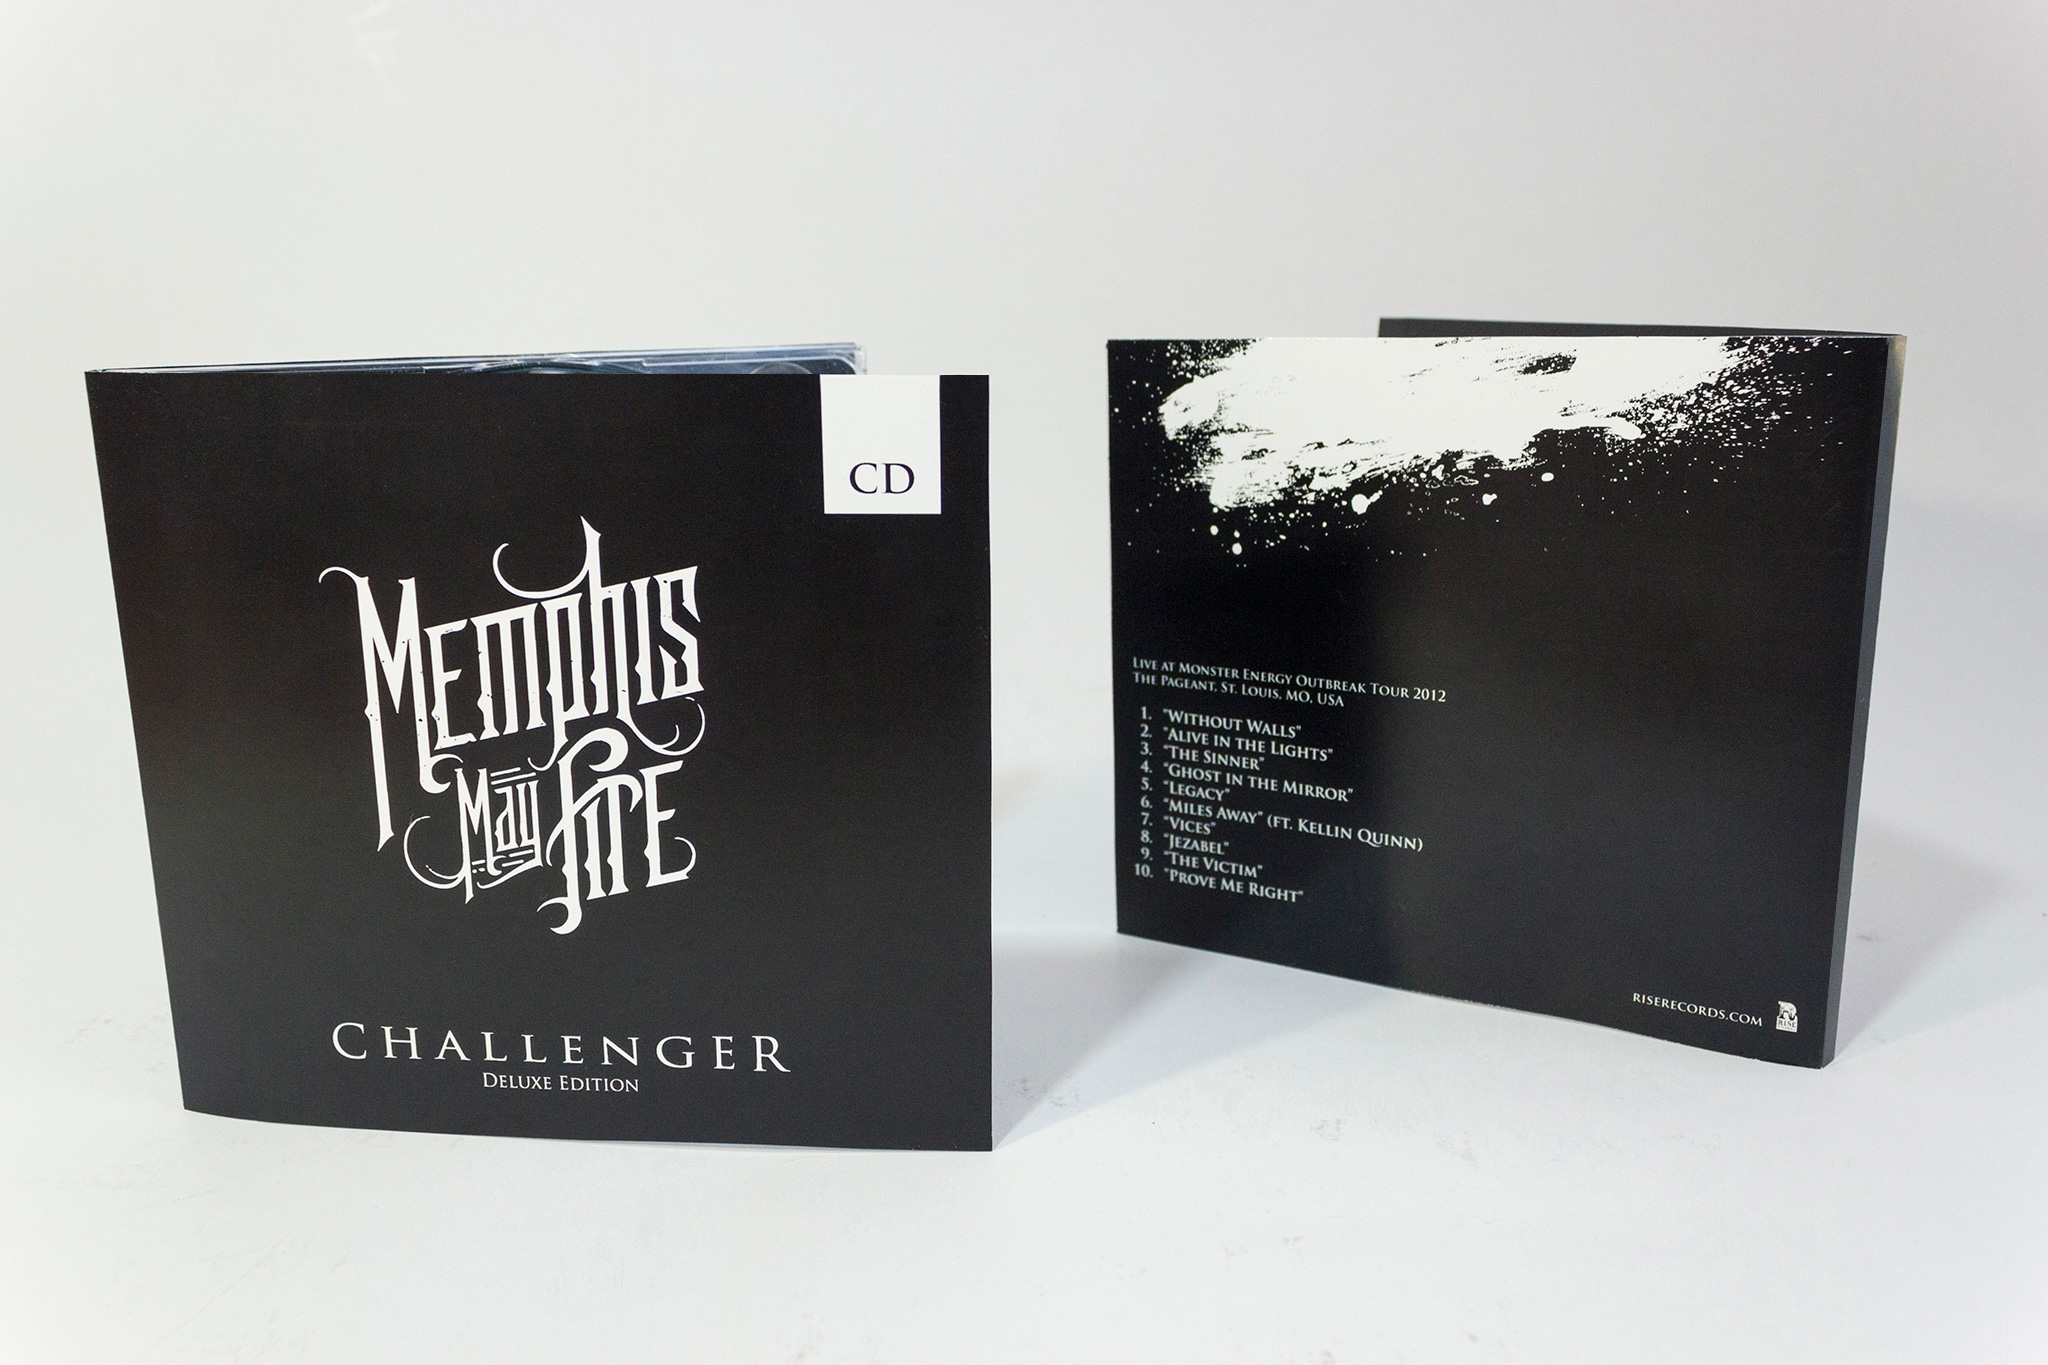 raniev-rod-alvarez-diseño-gráfico-queretaro-memphis-may-fire-3-packaging